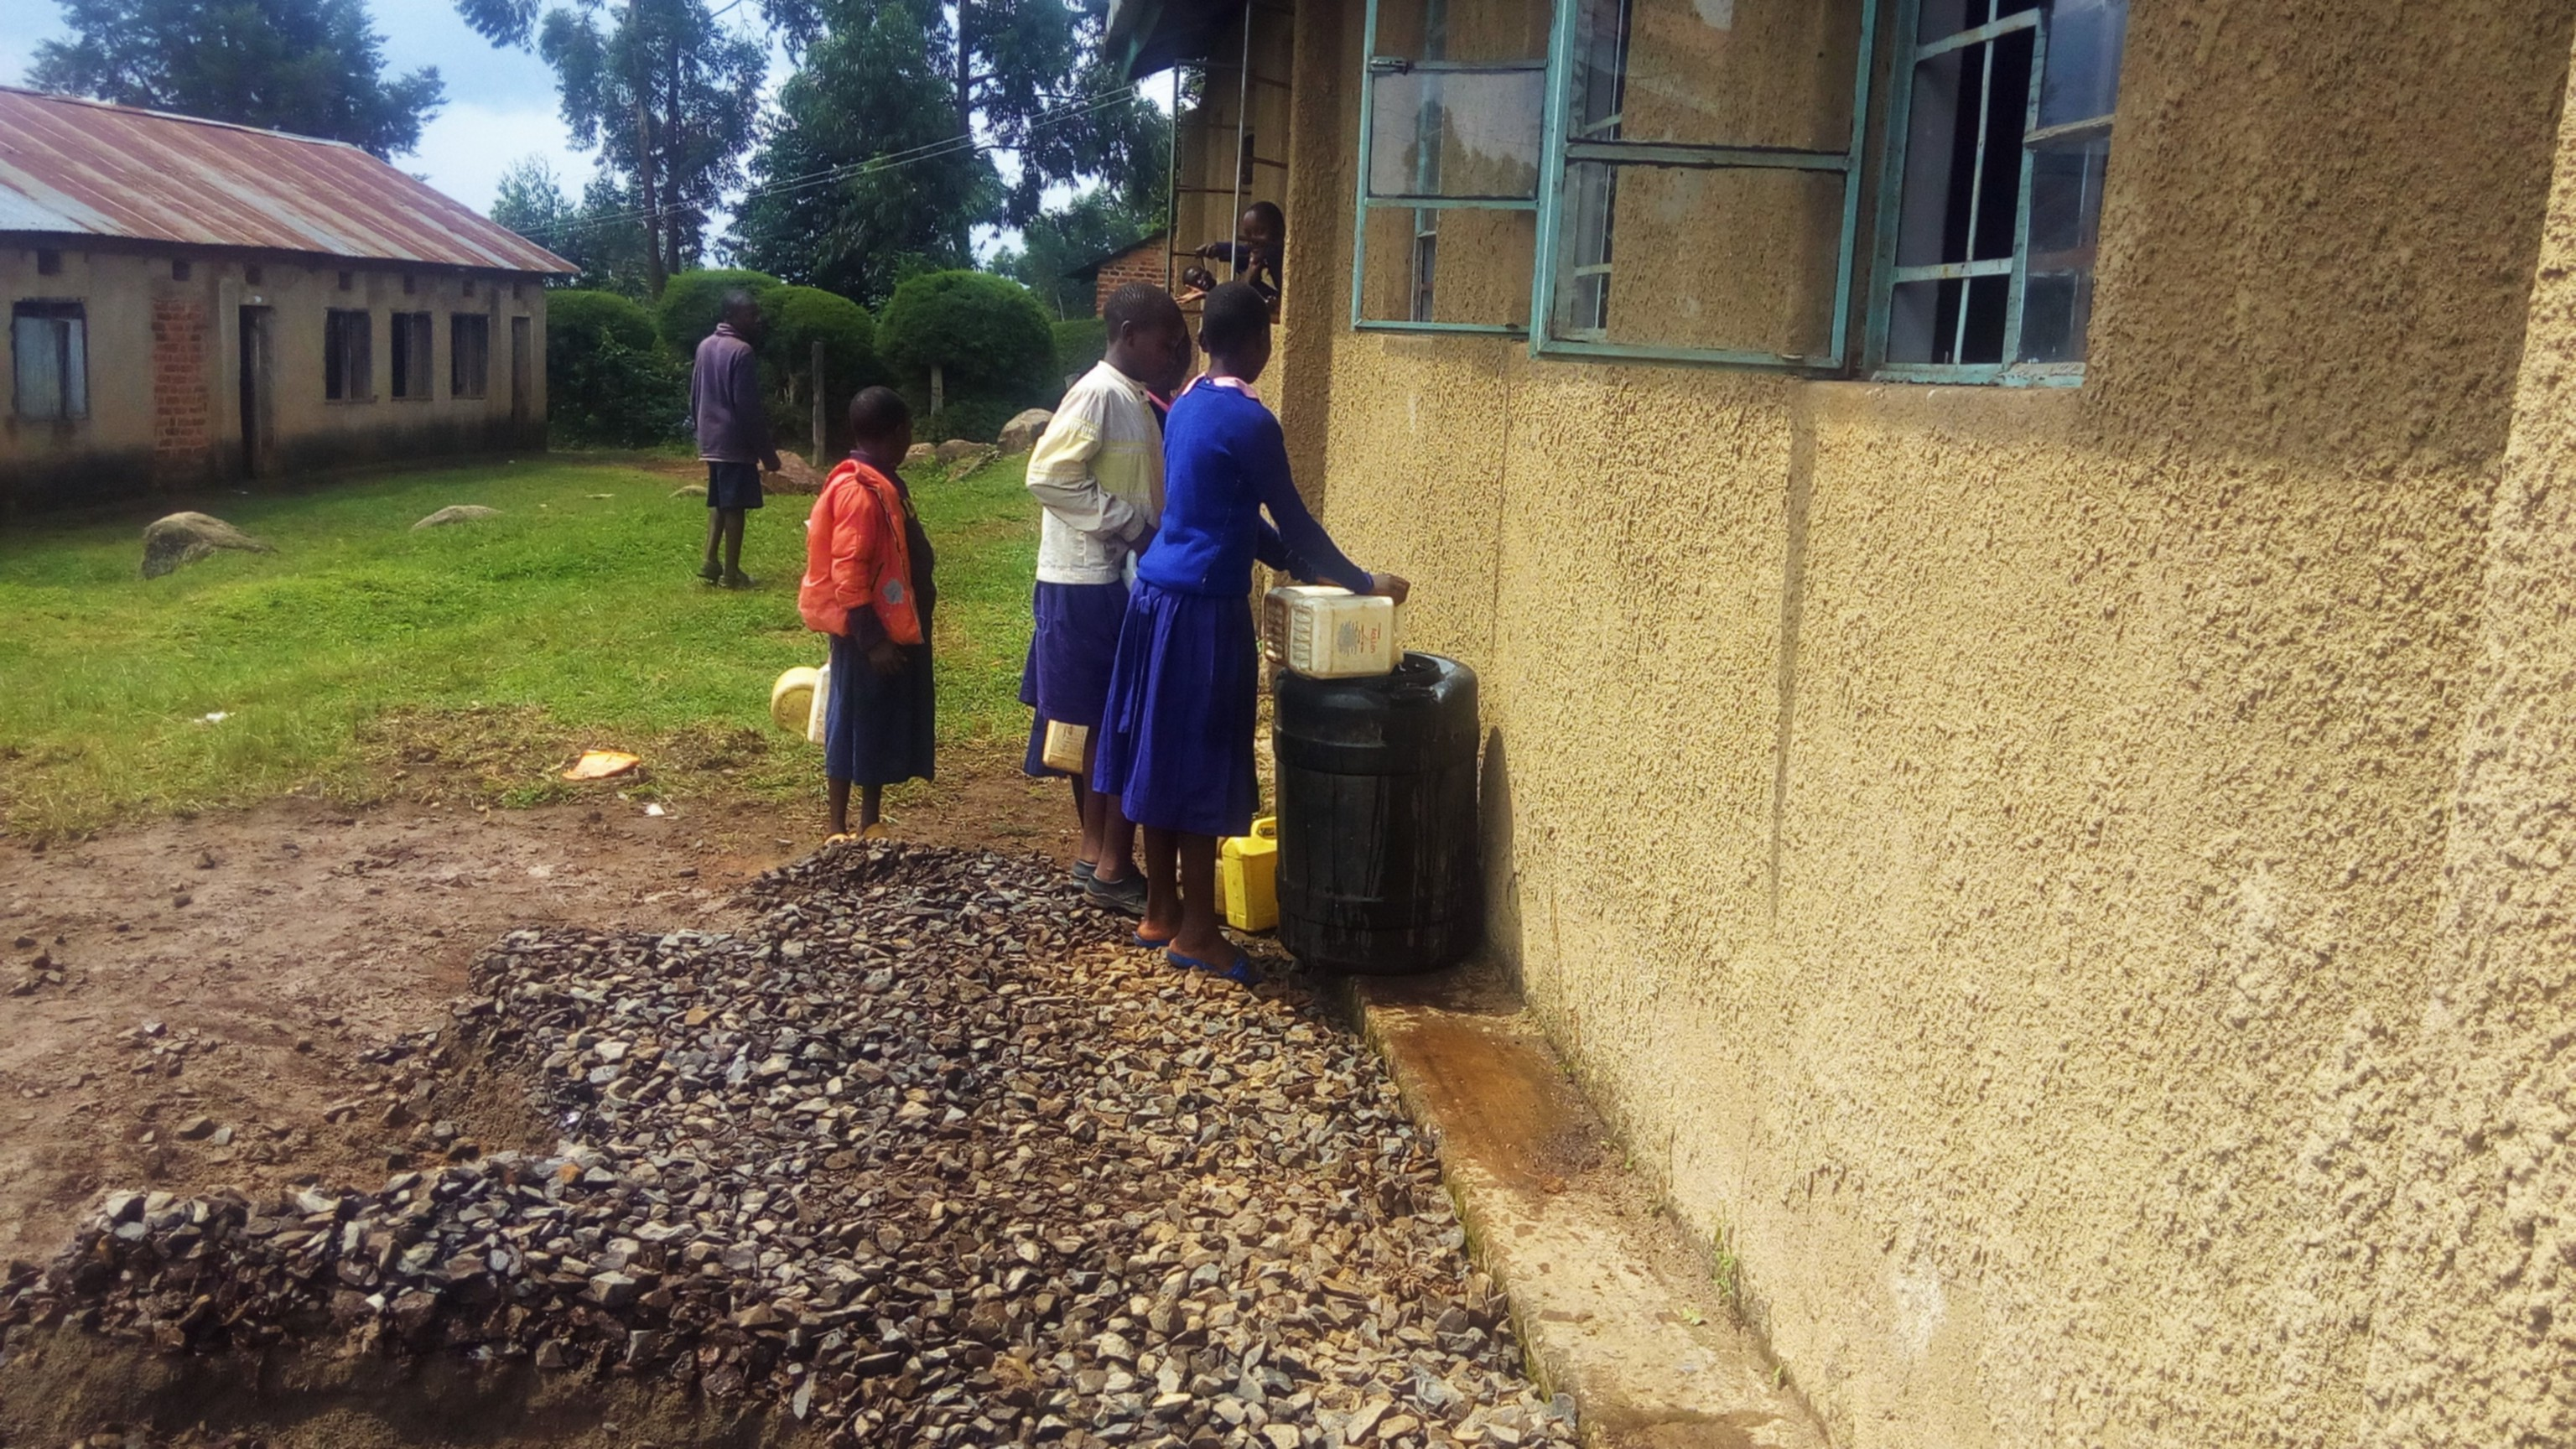 7 kenya4655 students fetching water for construction